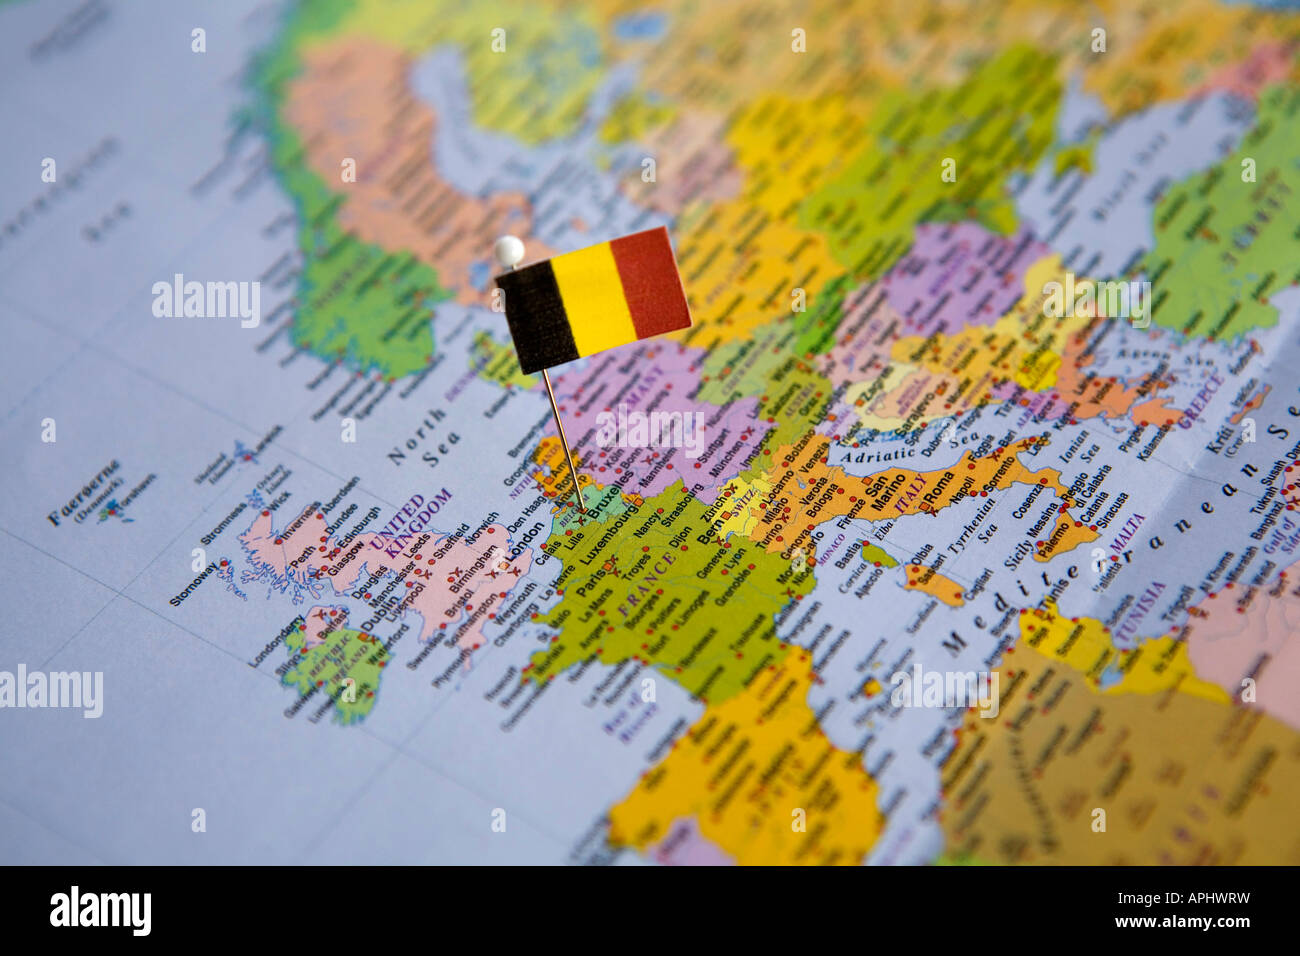 Maps Update 20001193 Belgium in the World Map Belgium location – Belgium on a World Map